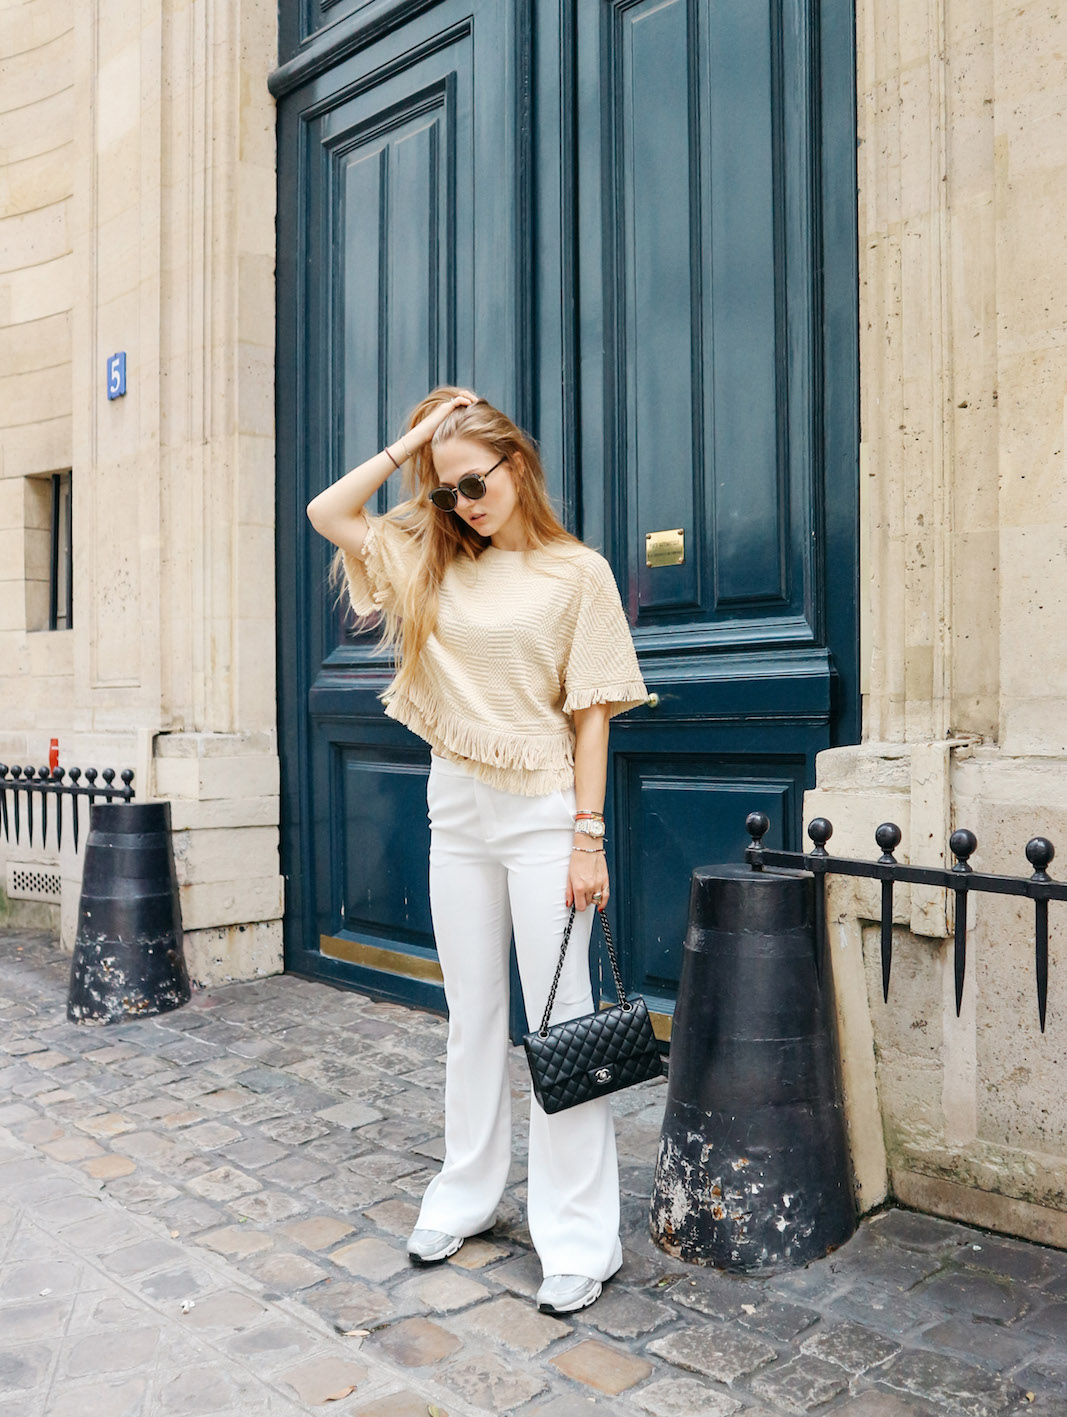 floortjeloves, paris, zara, chanel, chanel bag, chanel classic, nike, nike air max, nike air max 95, jimmy Choo, jimmy Choo sunglasses, eyewish opticiens